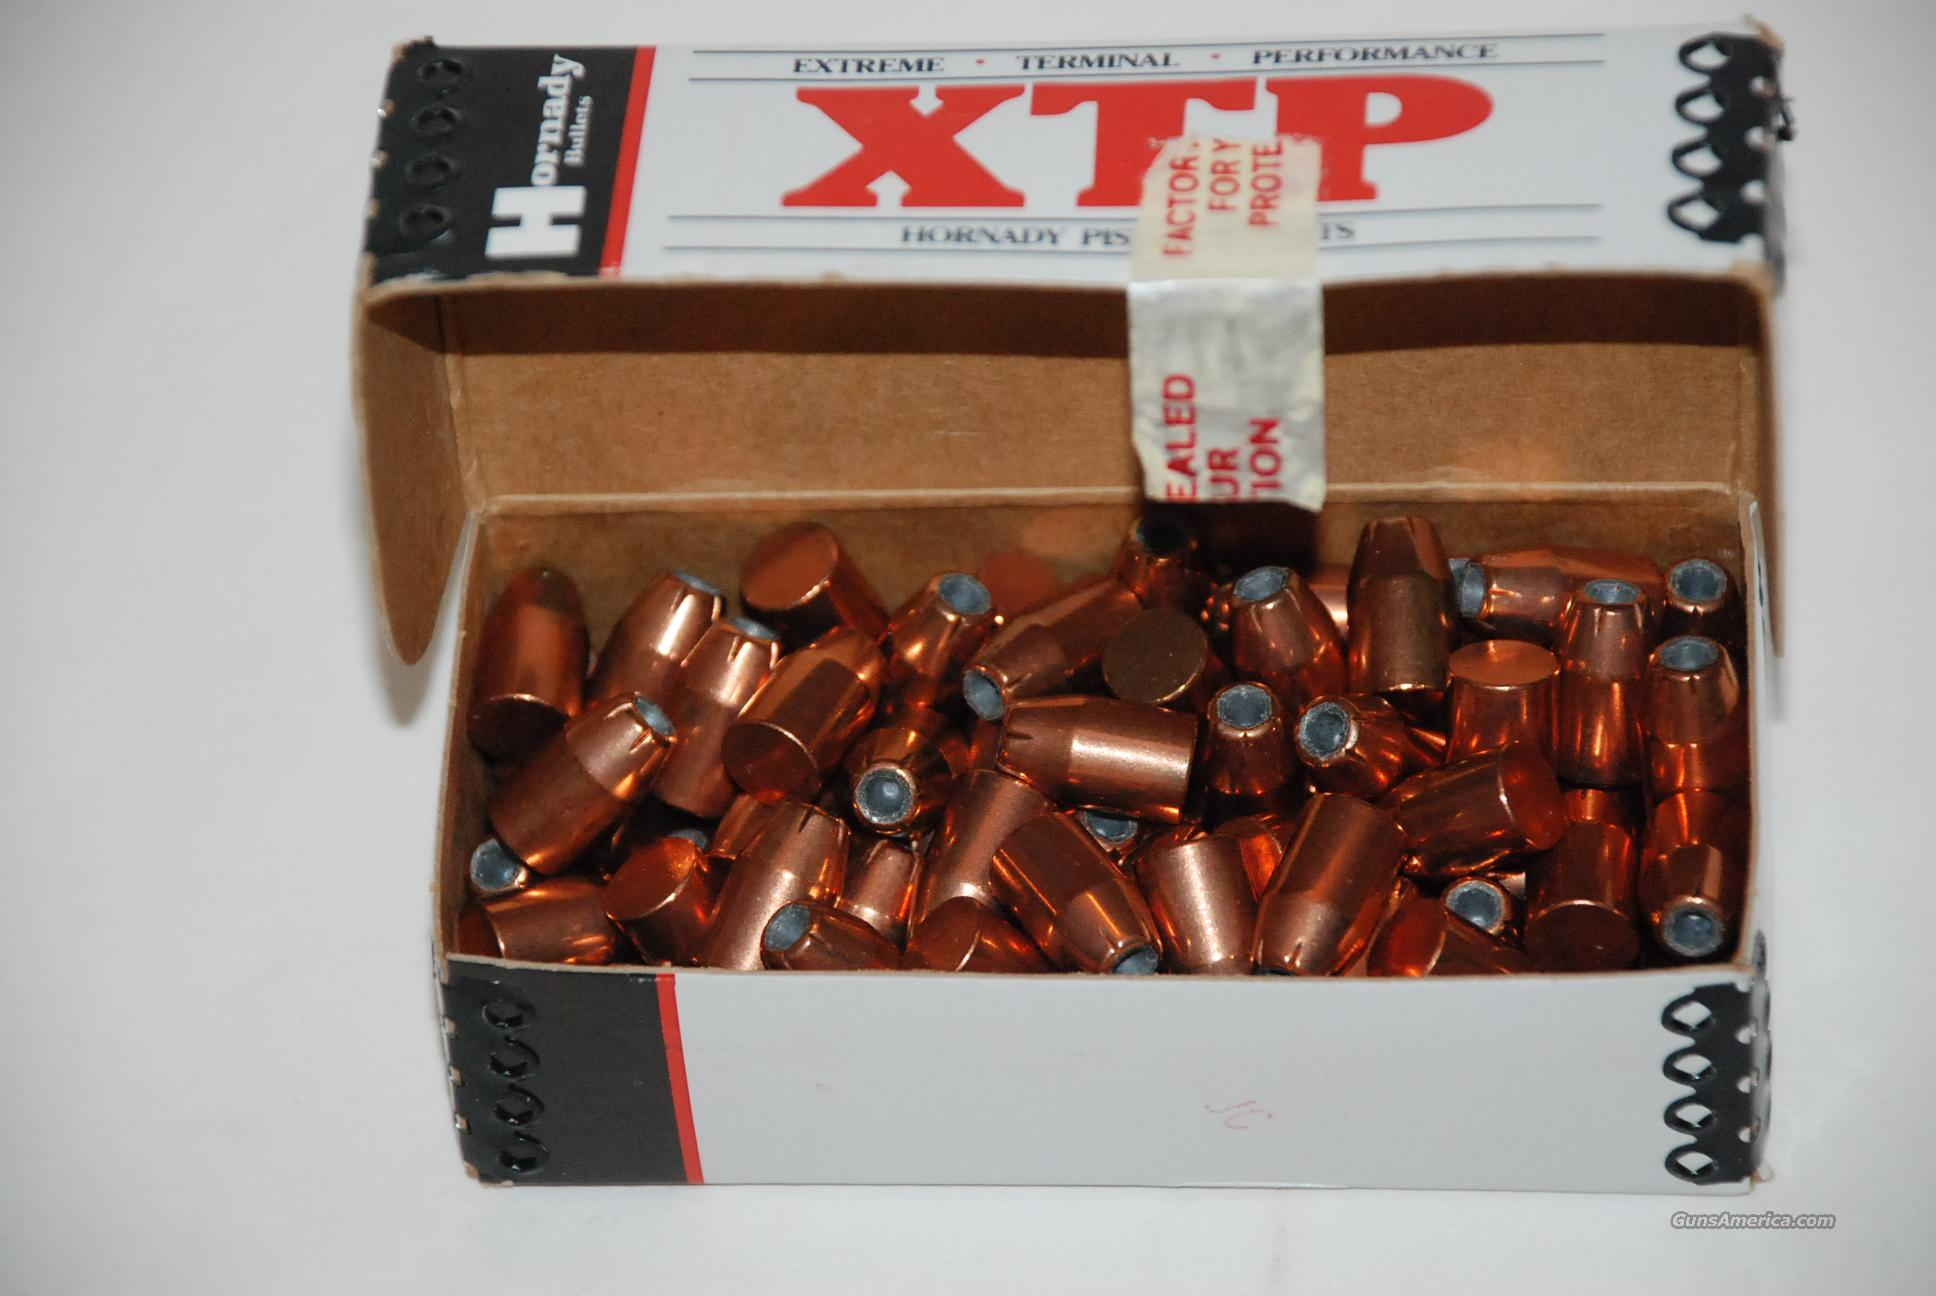 Hornady XTP Pistol Bullets 40 S&W, 10mm Auto (400 Diameter) 200 Grain  Jacketed Hollow Point Bullets - Box of 100